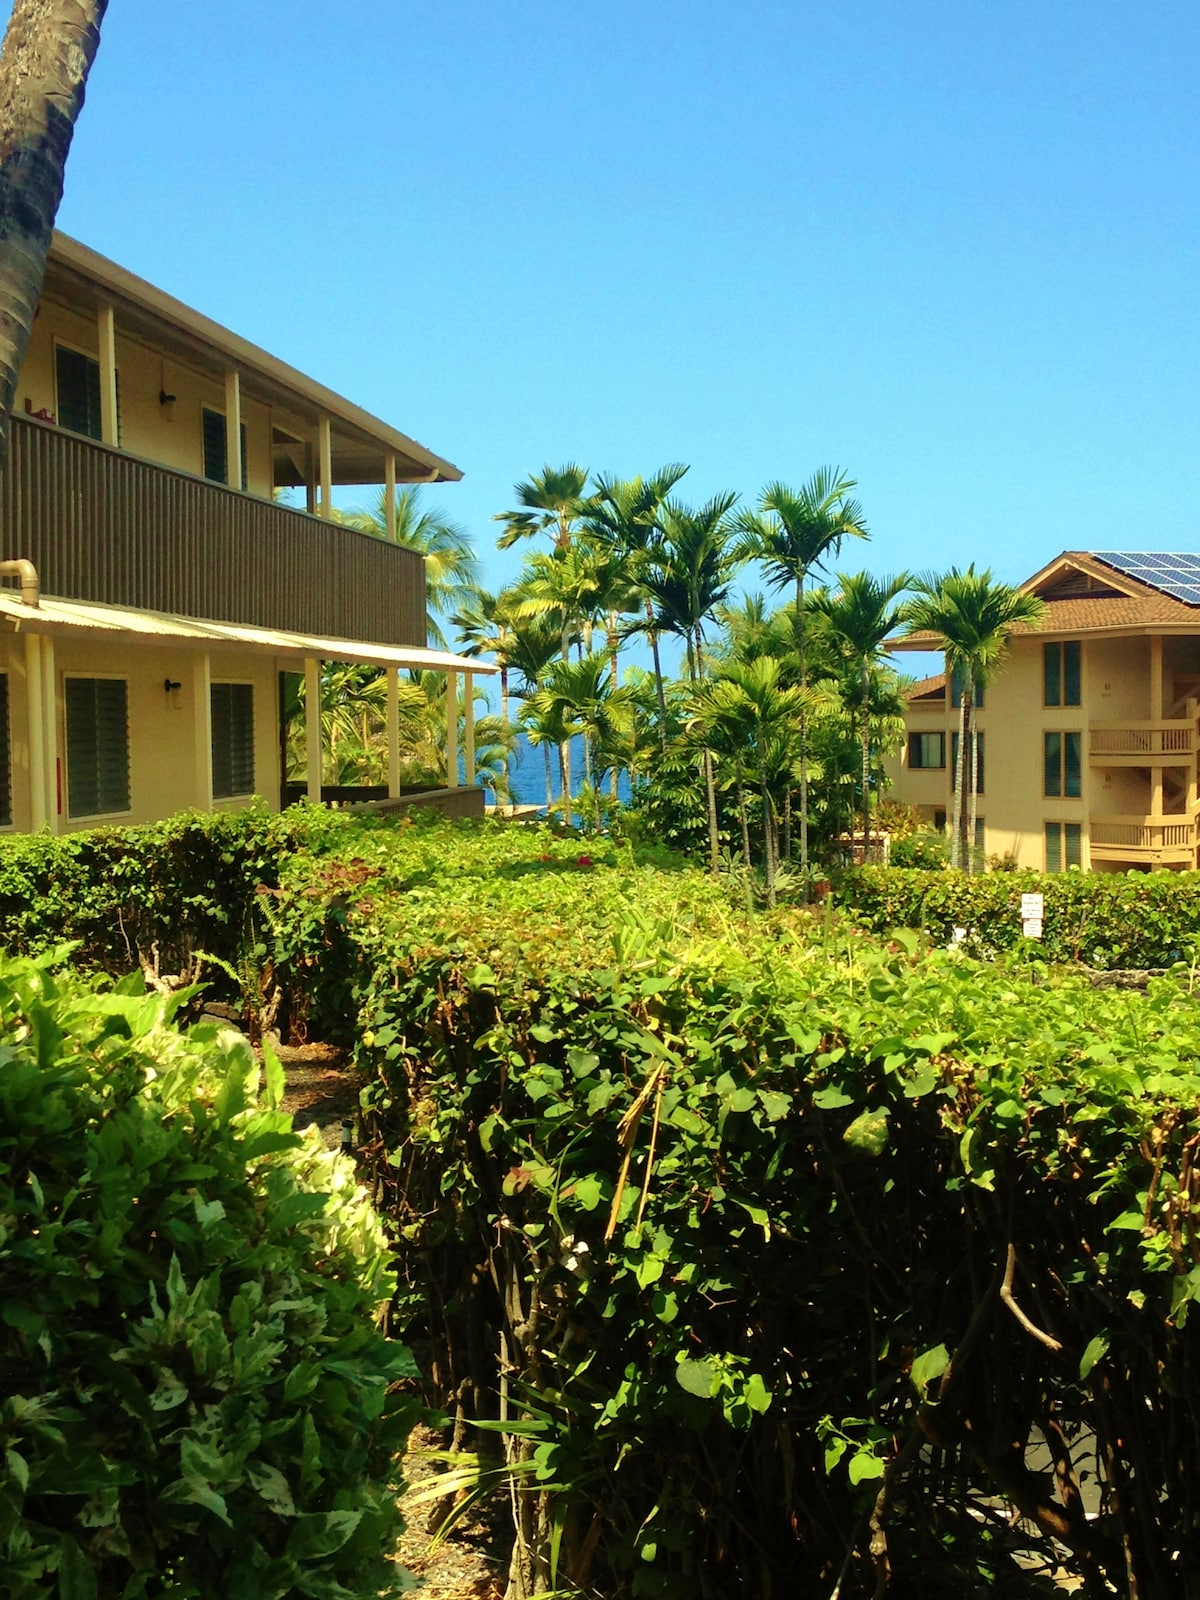 Peek-a-boo ocean view and lush greenery from your front windows